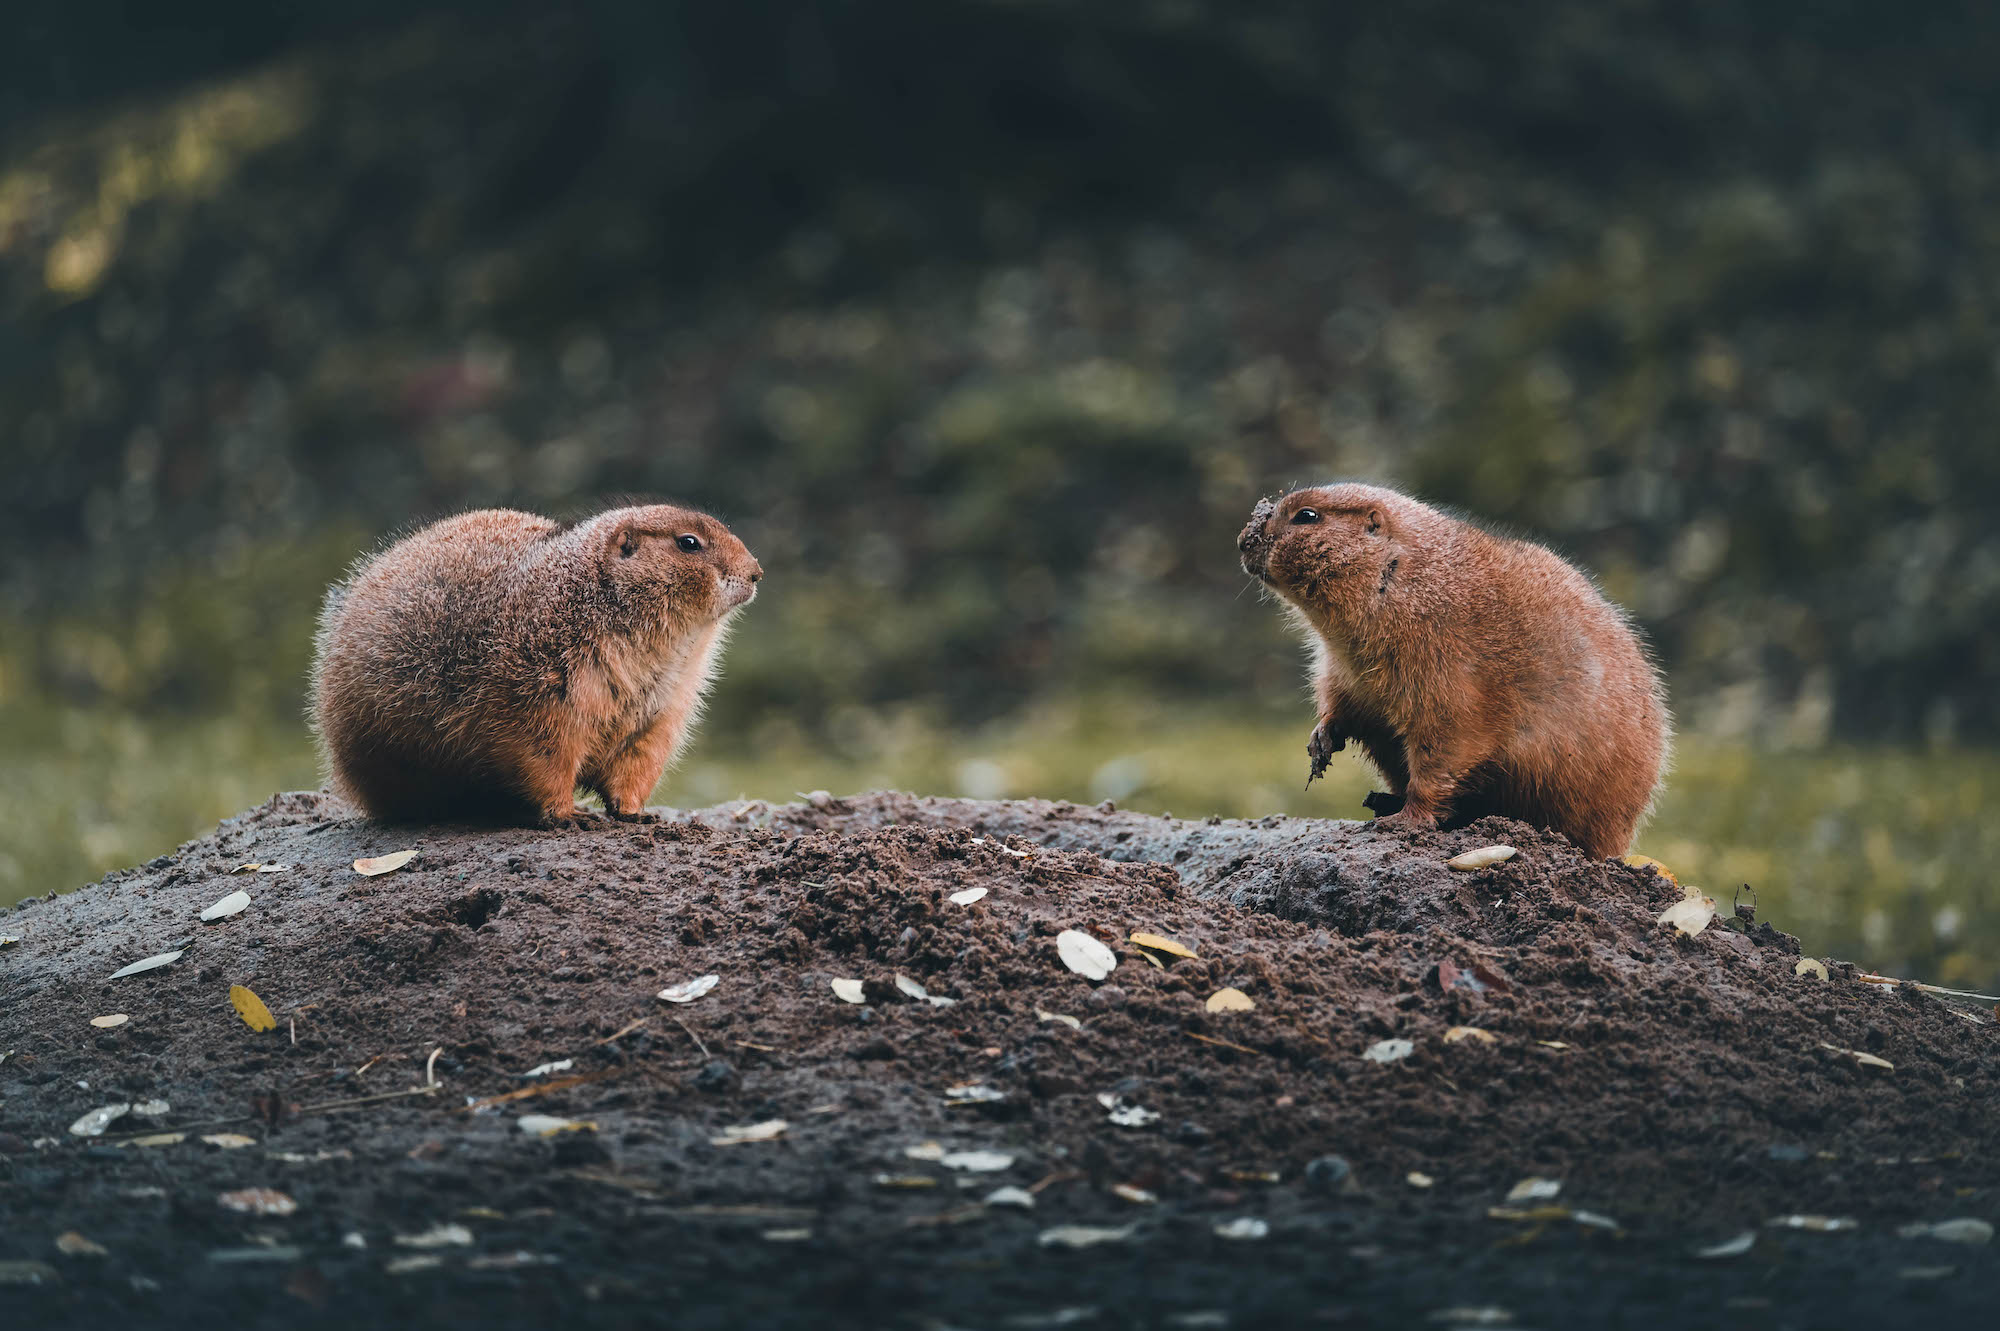 Two marmots looking at each other on a rock